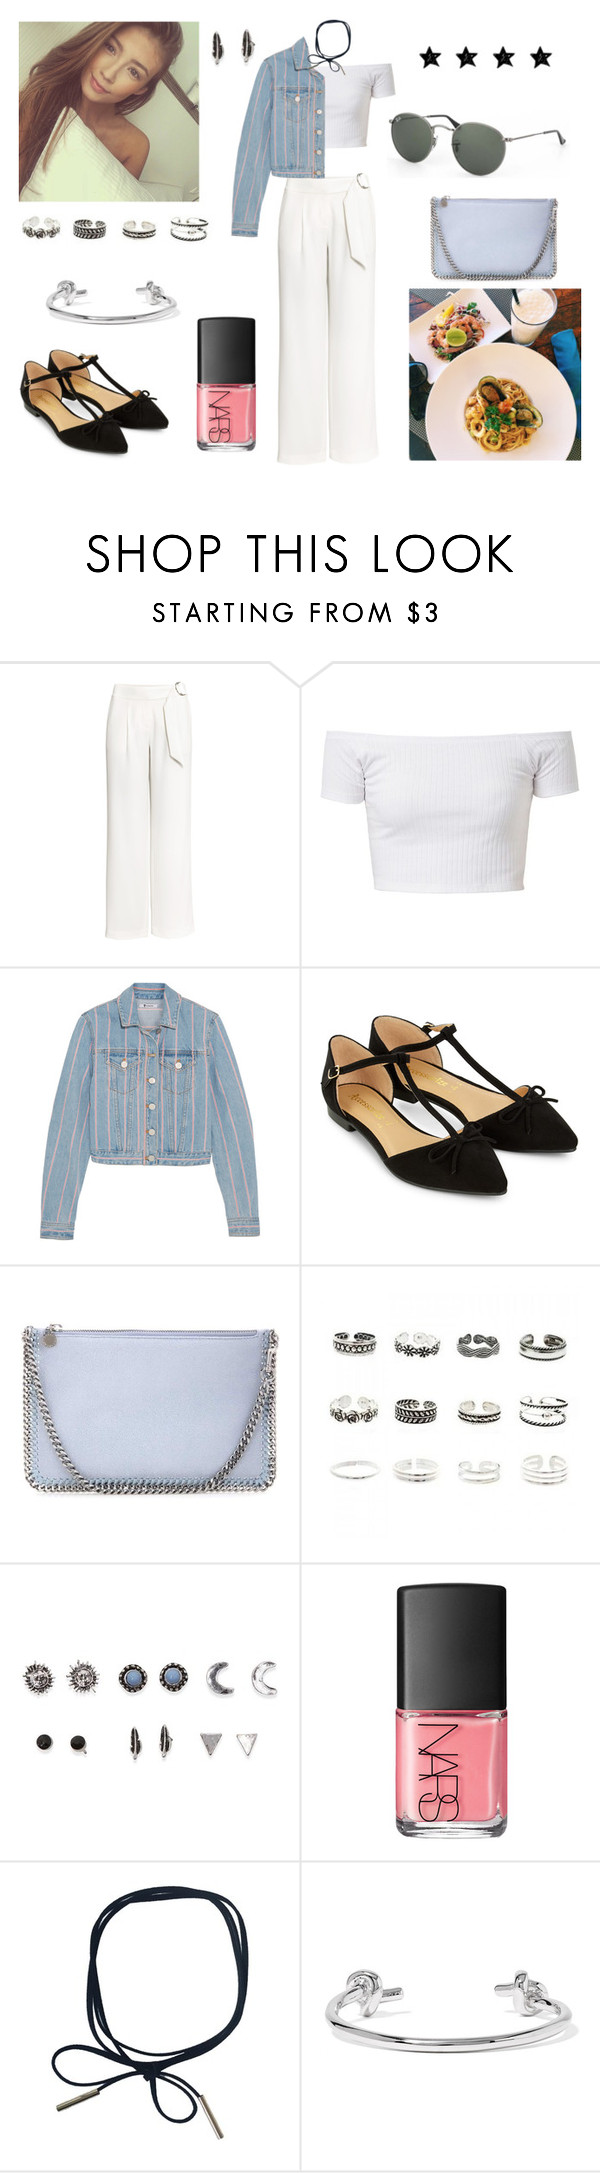 """30/09/16"" by milena-serranista ❤ liked on Polyvore featuring H&M, T By Alexander Wang, Accessorize, STELLA McCARTNEY, Retrò, With Love From CA, NARS Cosmetics, Jennifer Fisher and Ray-Ban"